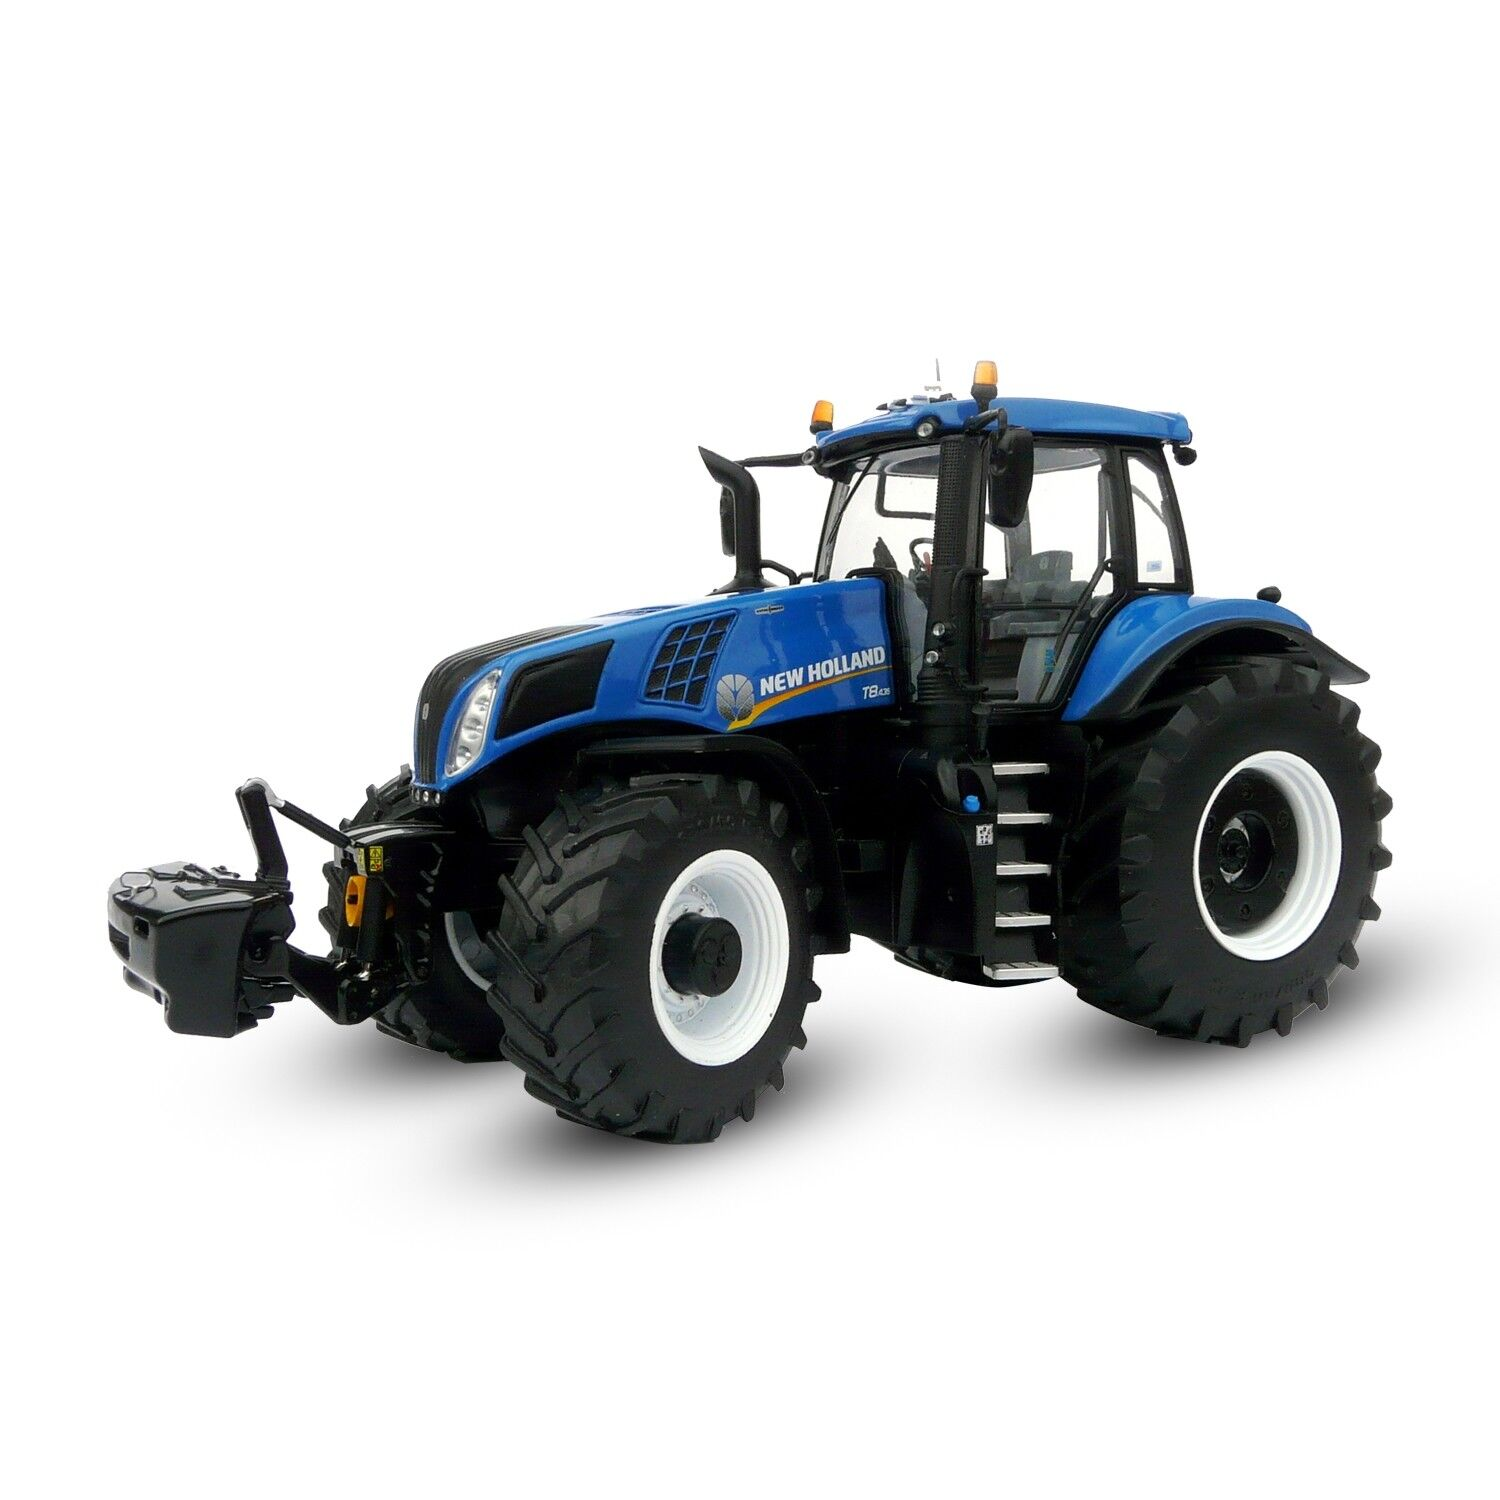 MODELLINO TRATTORE NEW HOLLAND T8.435 SCALA 1 32 IN METALLO MARGE MODELS